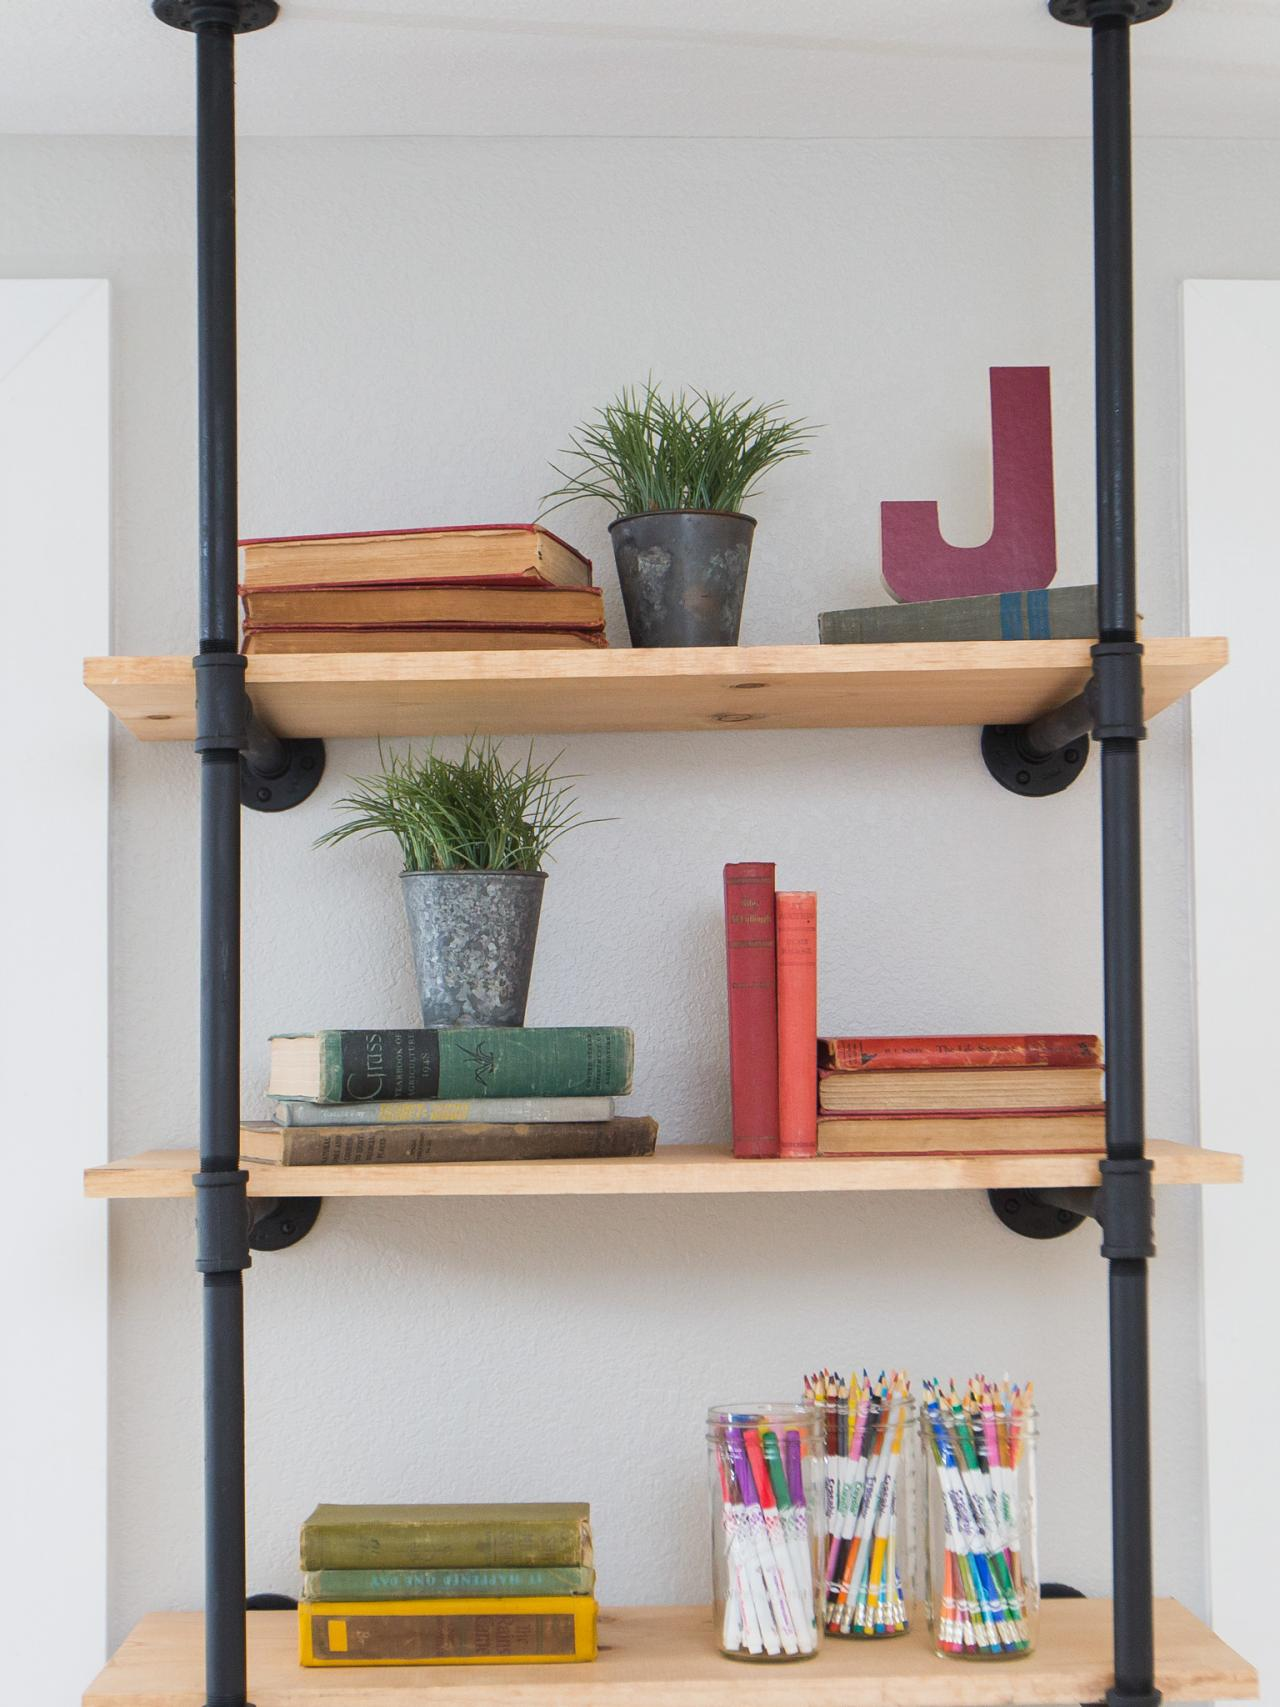 Make Your Bookshelves Shelfie Worthy With Inspiration From Fixer Upper